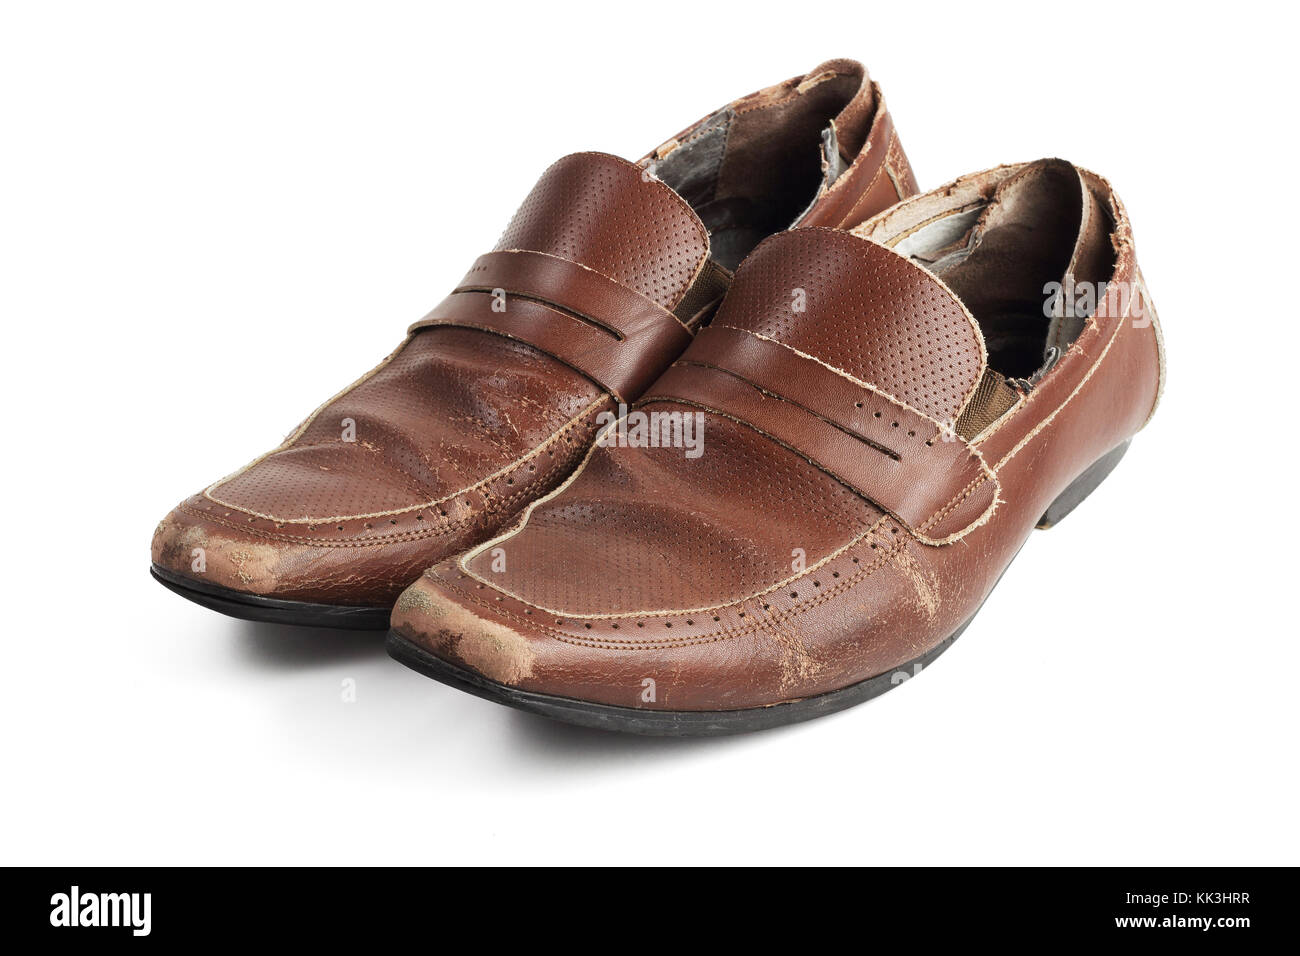 Old Pair of Used and Worn Brown Leather Shoes on White Background - Stock Image